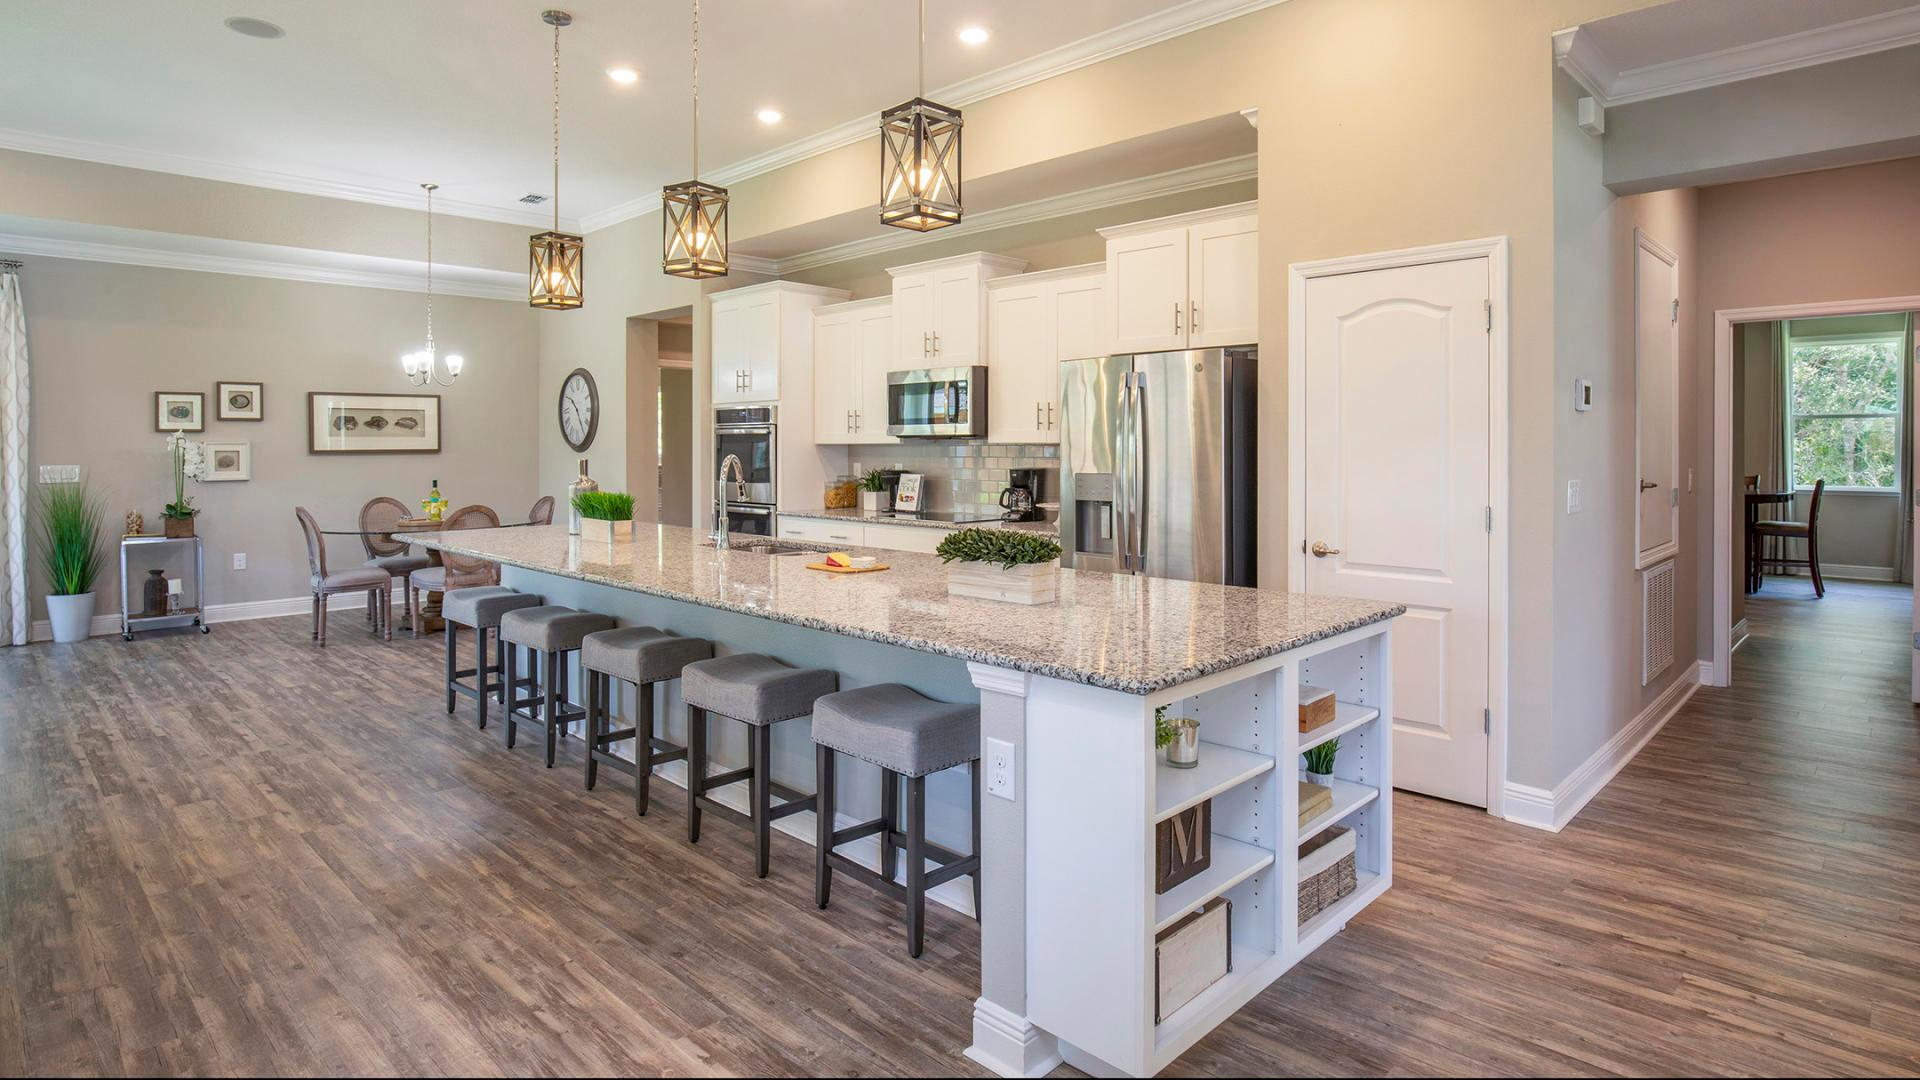 Kitchen featured in the Sienna By Maronda Homes in Martin-St. Lucie-Okeechobee Counties, FL